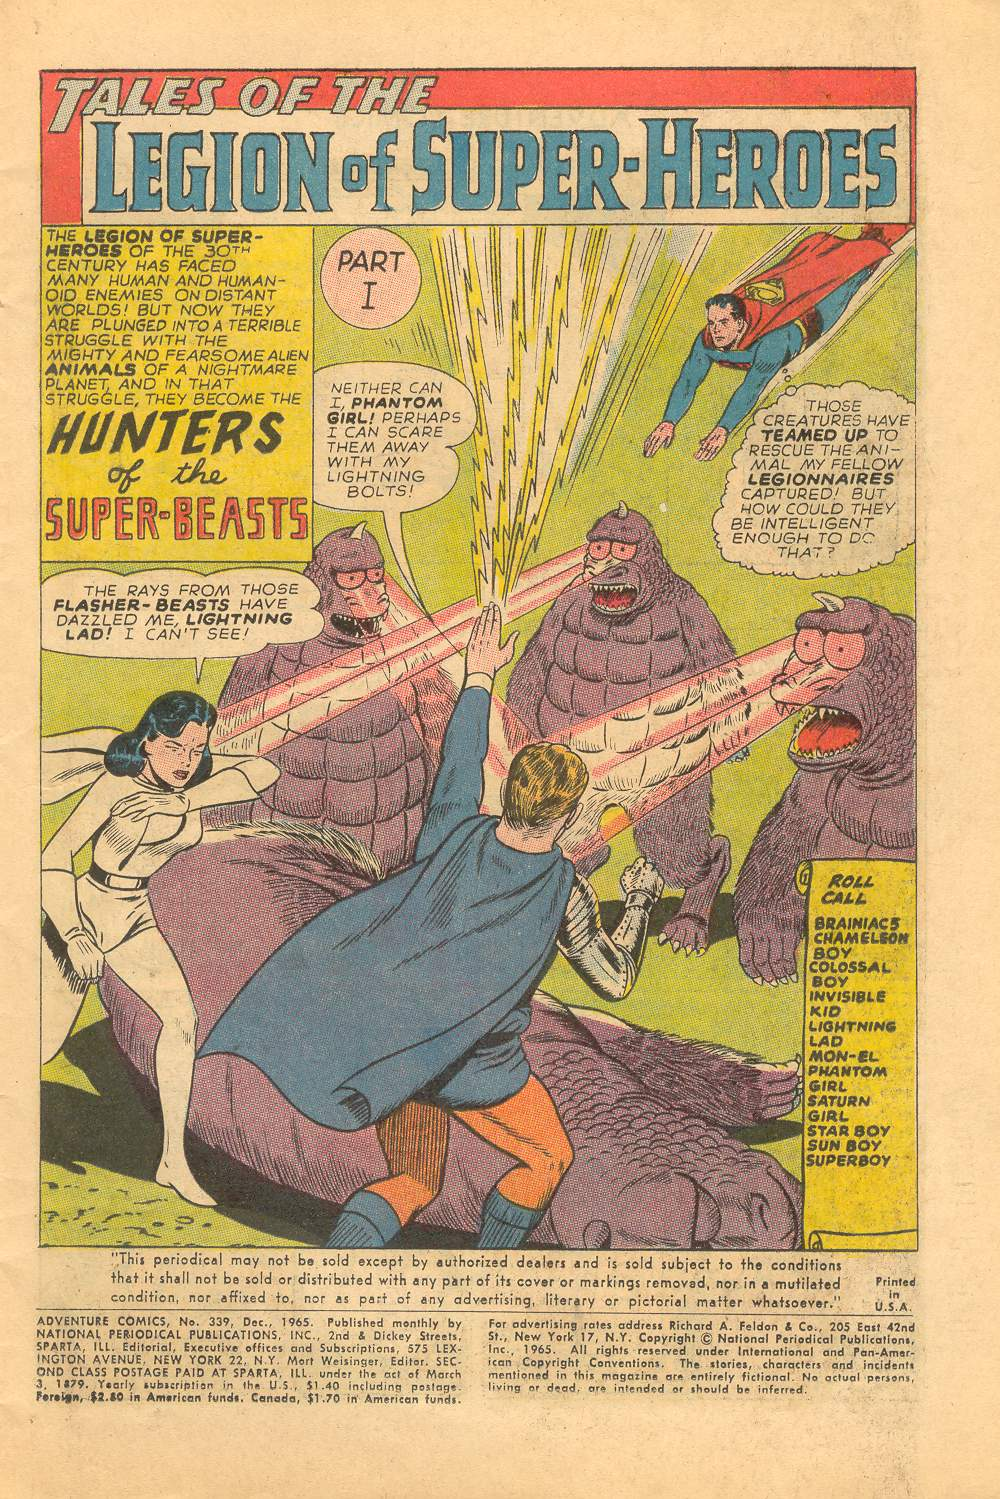 Read online Adventure Comics (1938) comic -  Issue #339 - 3